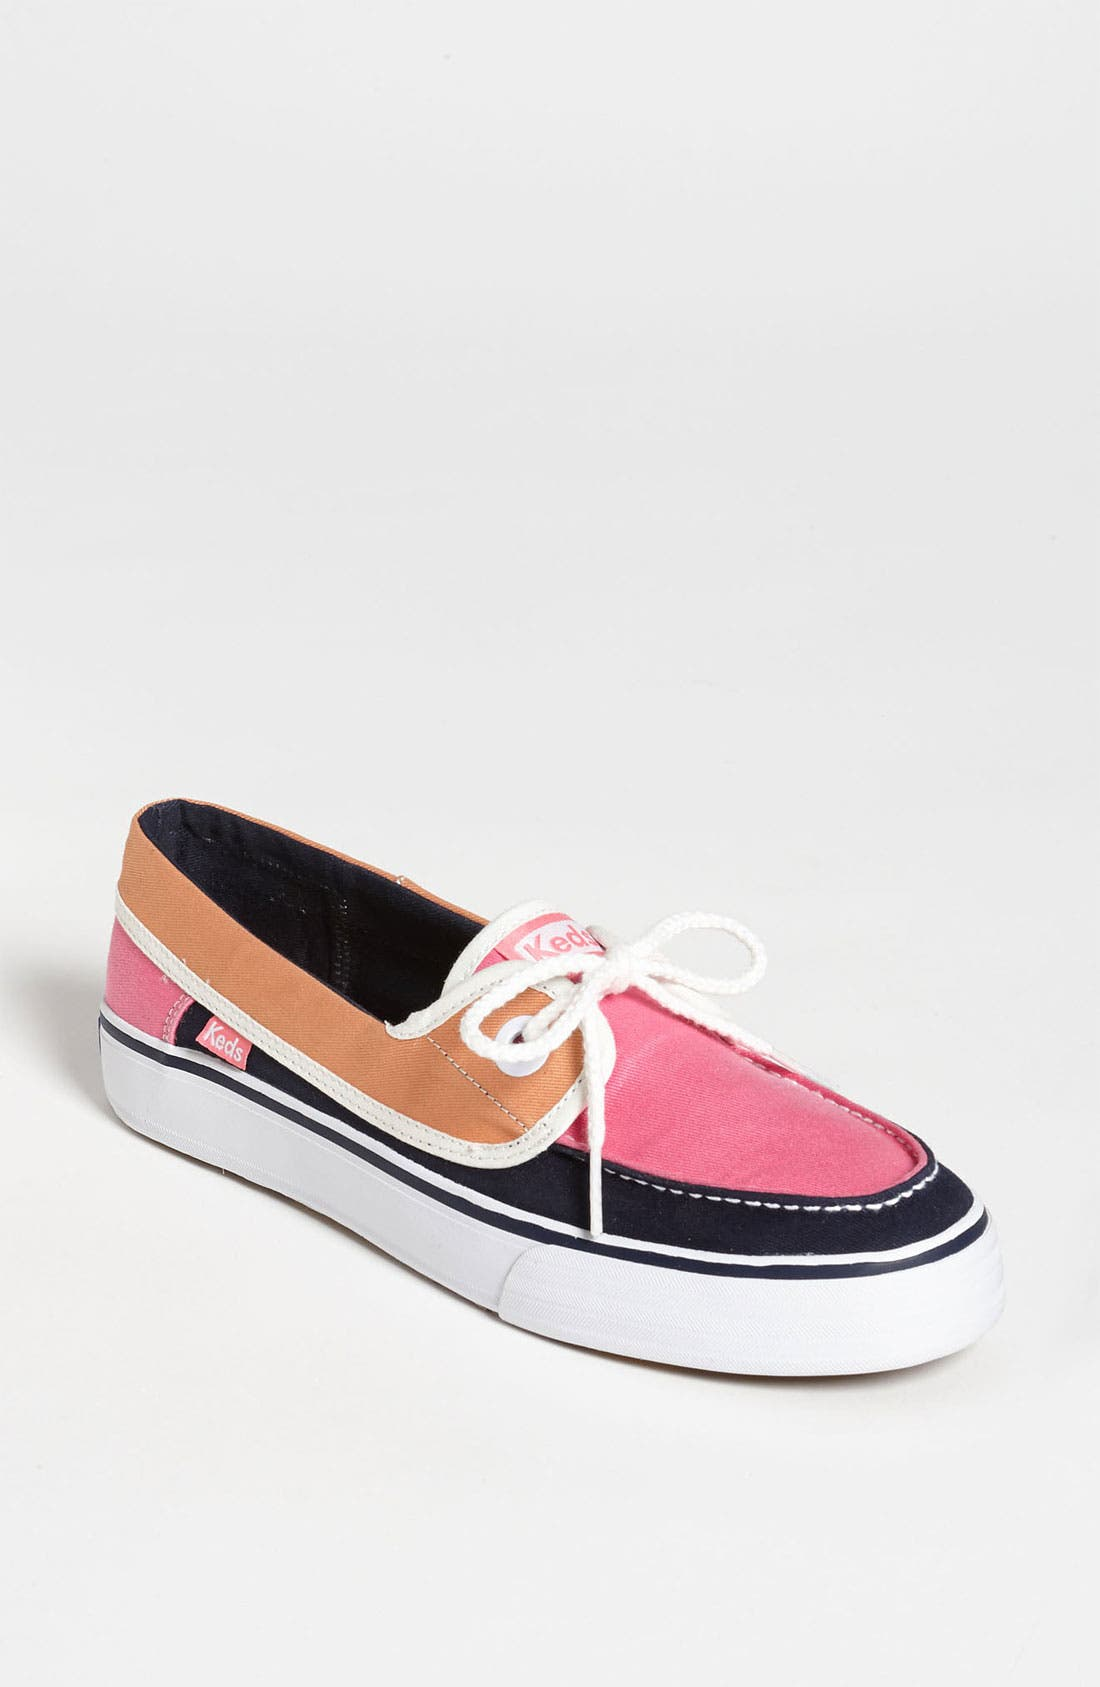 Alternate Image 1 Selected - Keds® 'Starbird - Colorblock' Sneaker (Women)